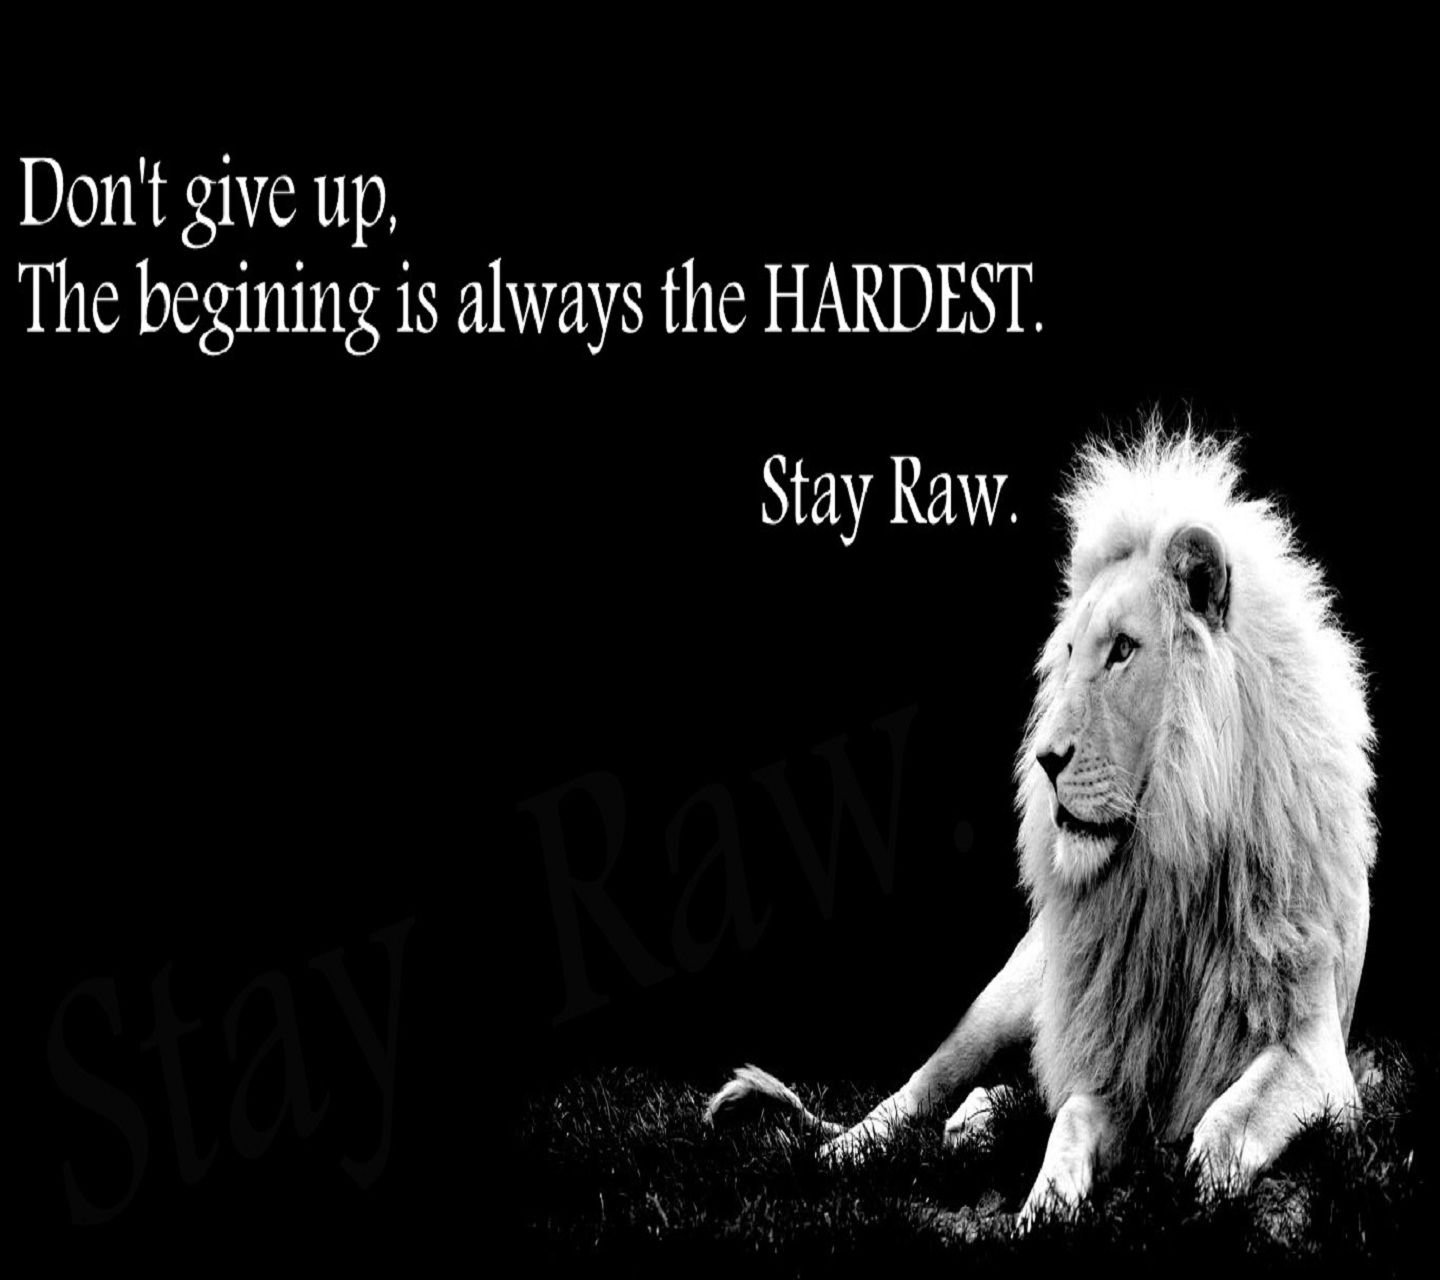 1440x1280 mobile phone wallpapers download 61 - Never give up wallpapers desktop hd ...